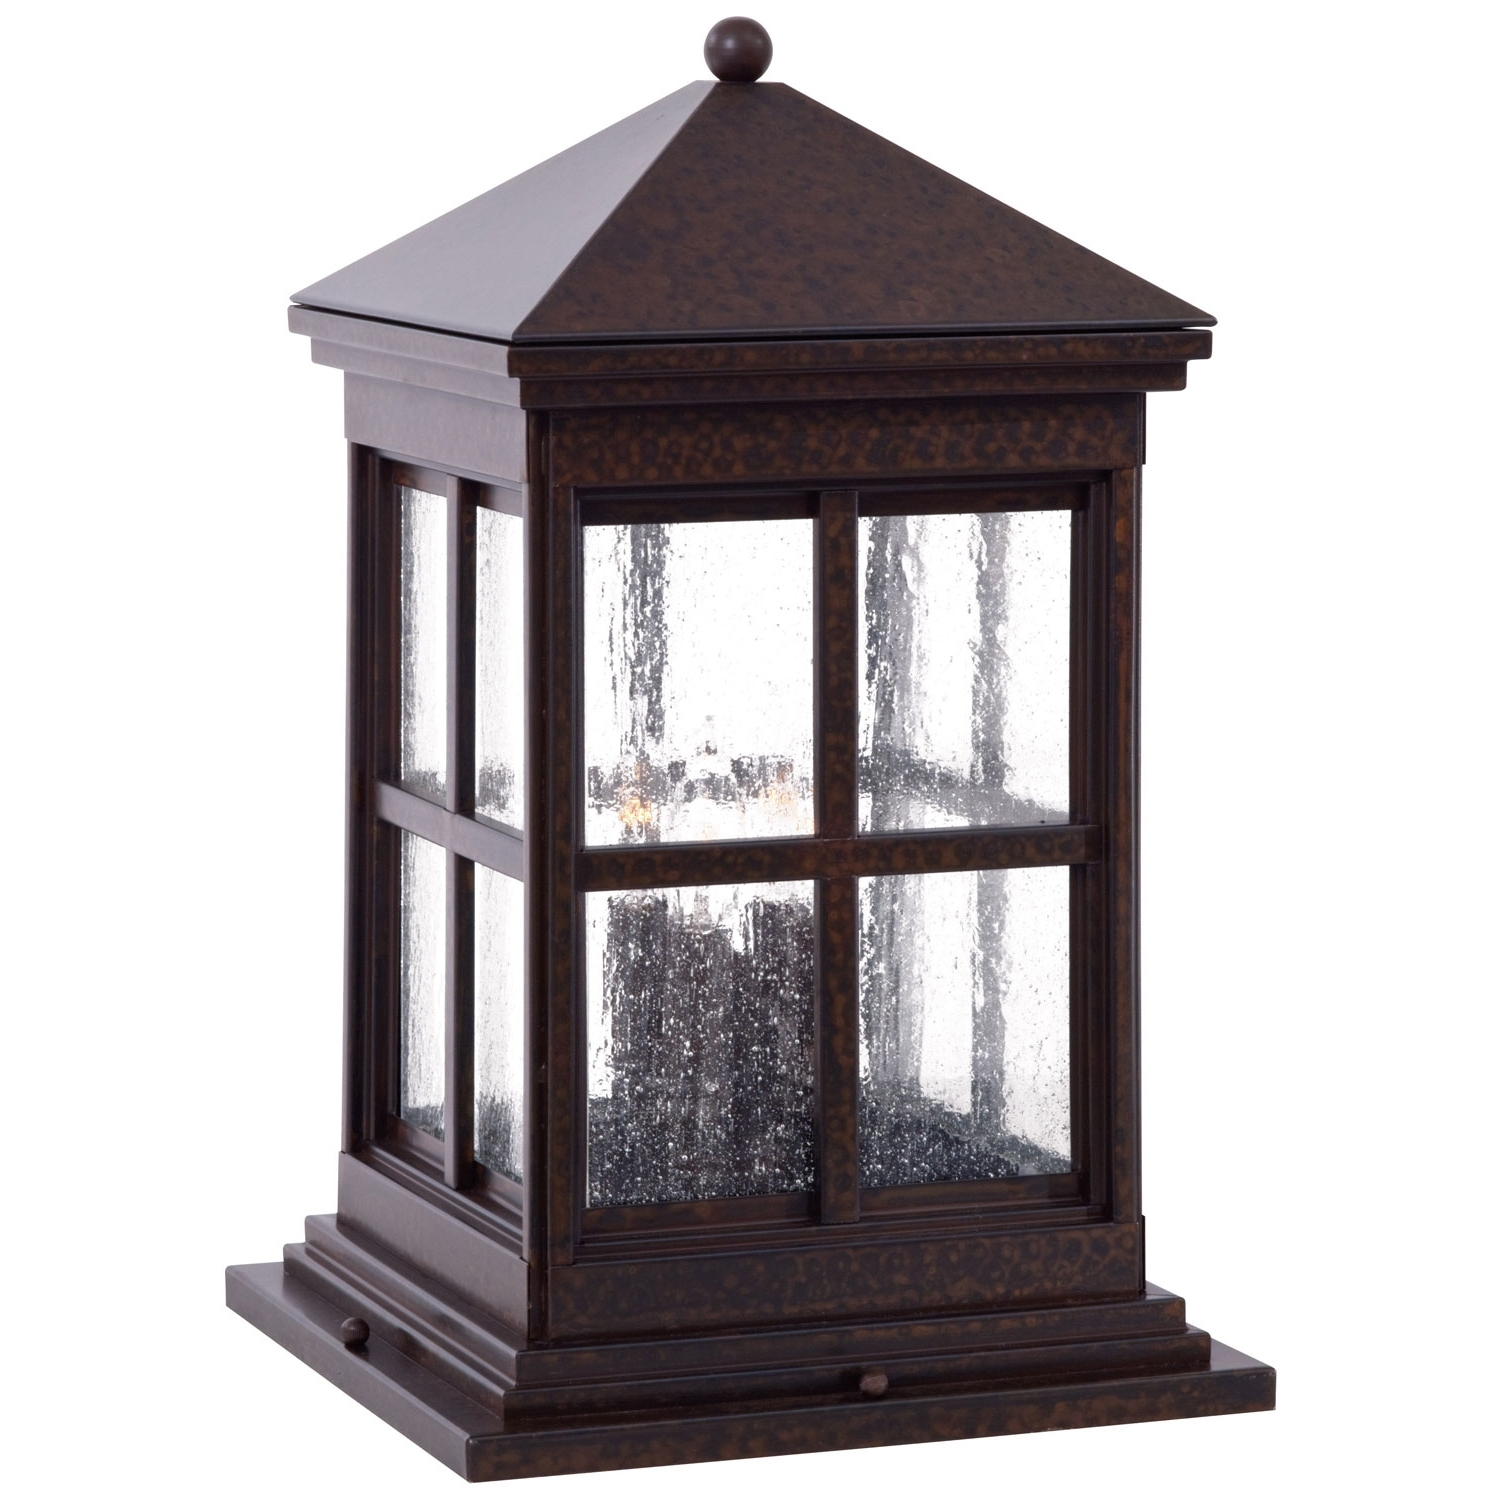 Most Popular Outdoor Lanterns For Pillars Intended For Column Mount Outdoor Lights (View 2 of 20)